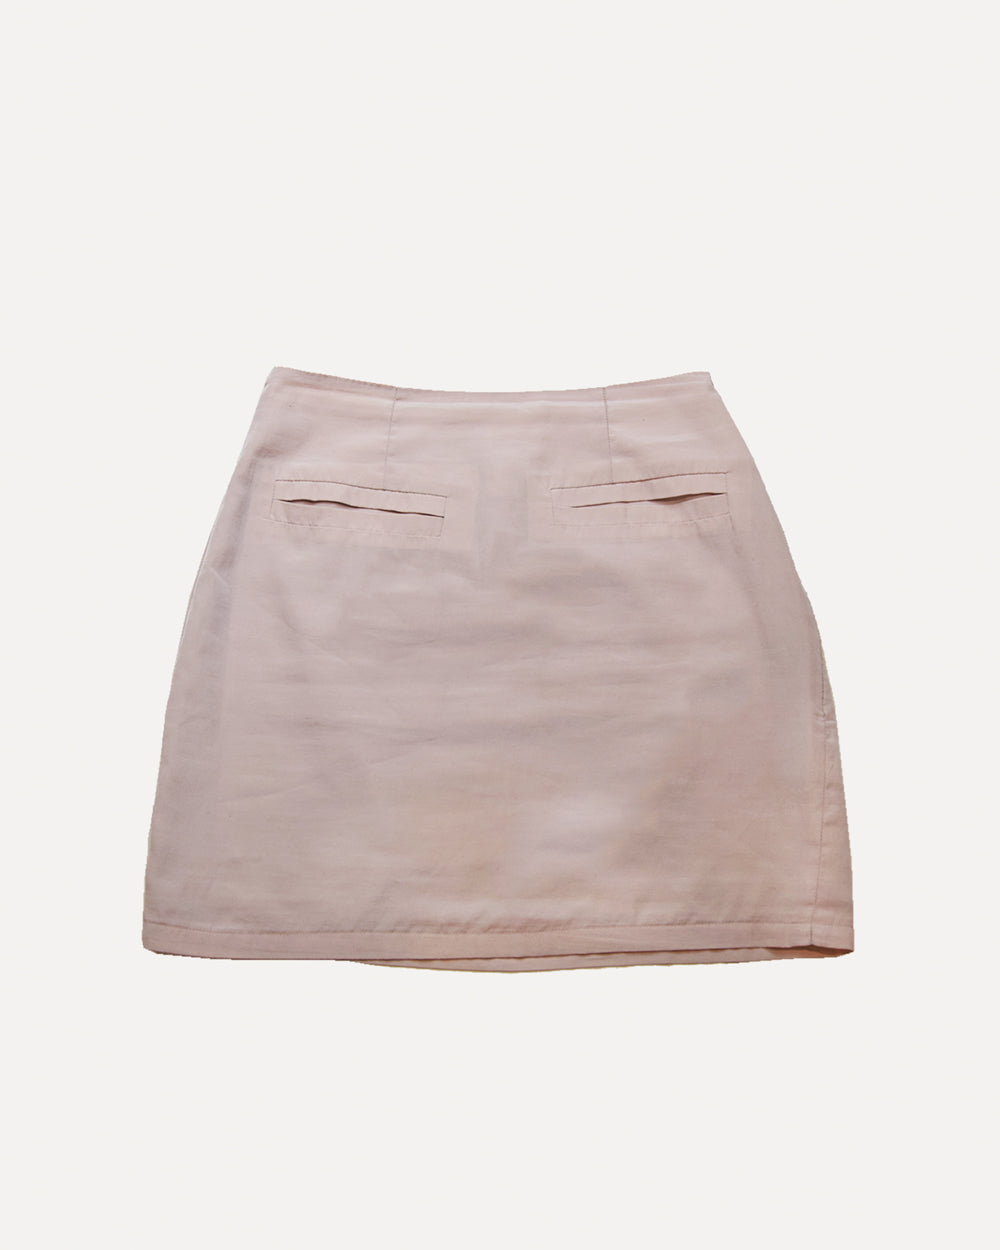 LifewithBird Mini Skirt | 6-8